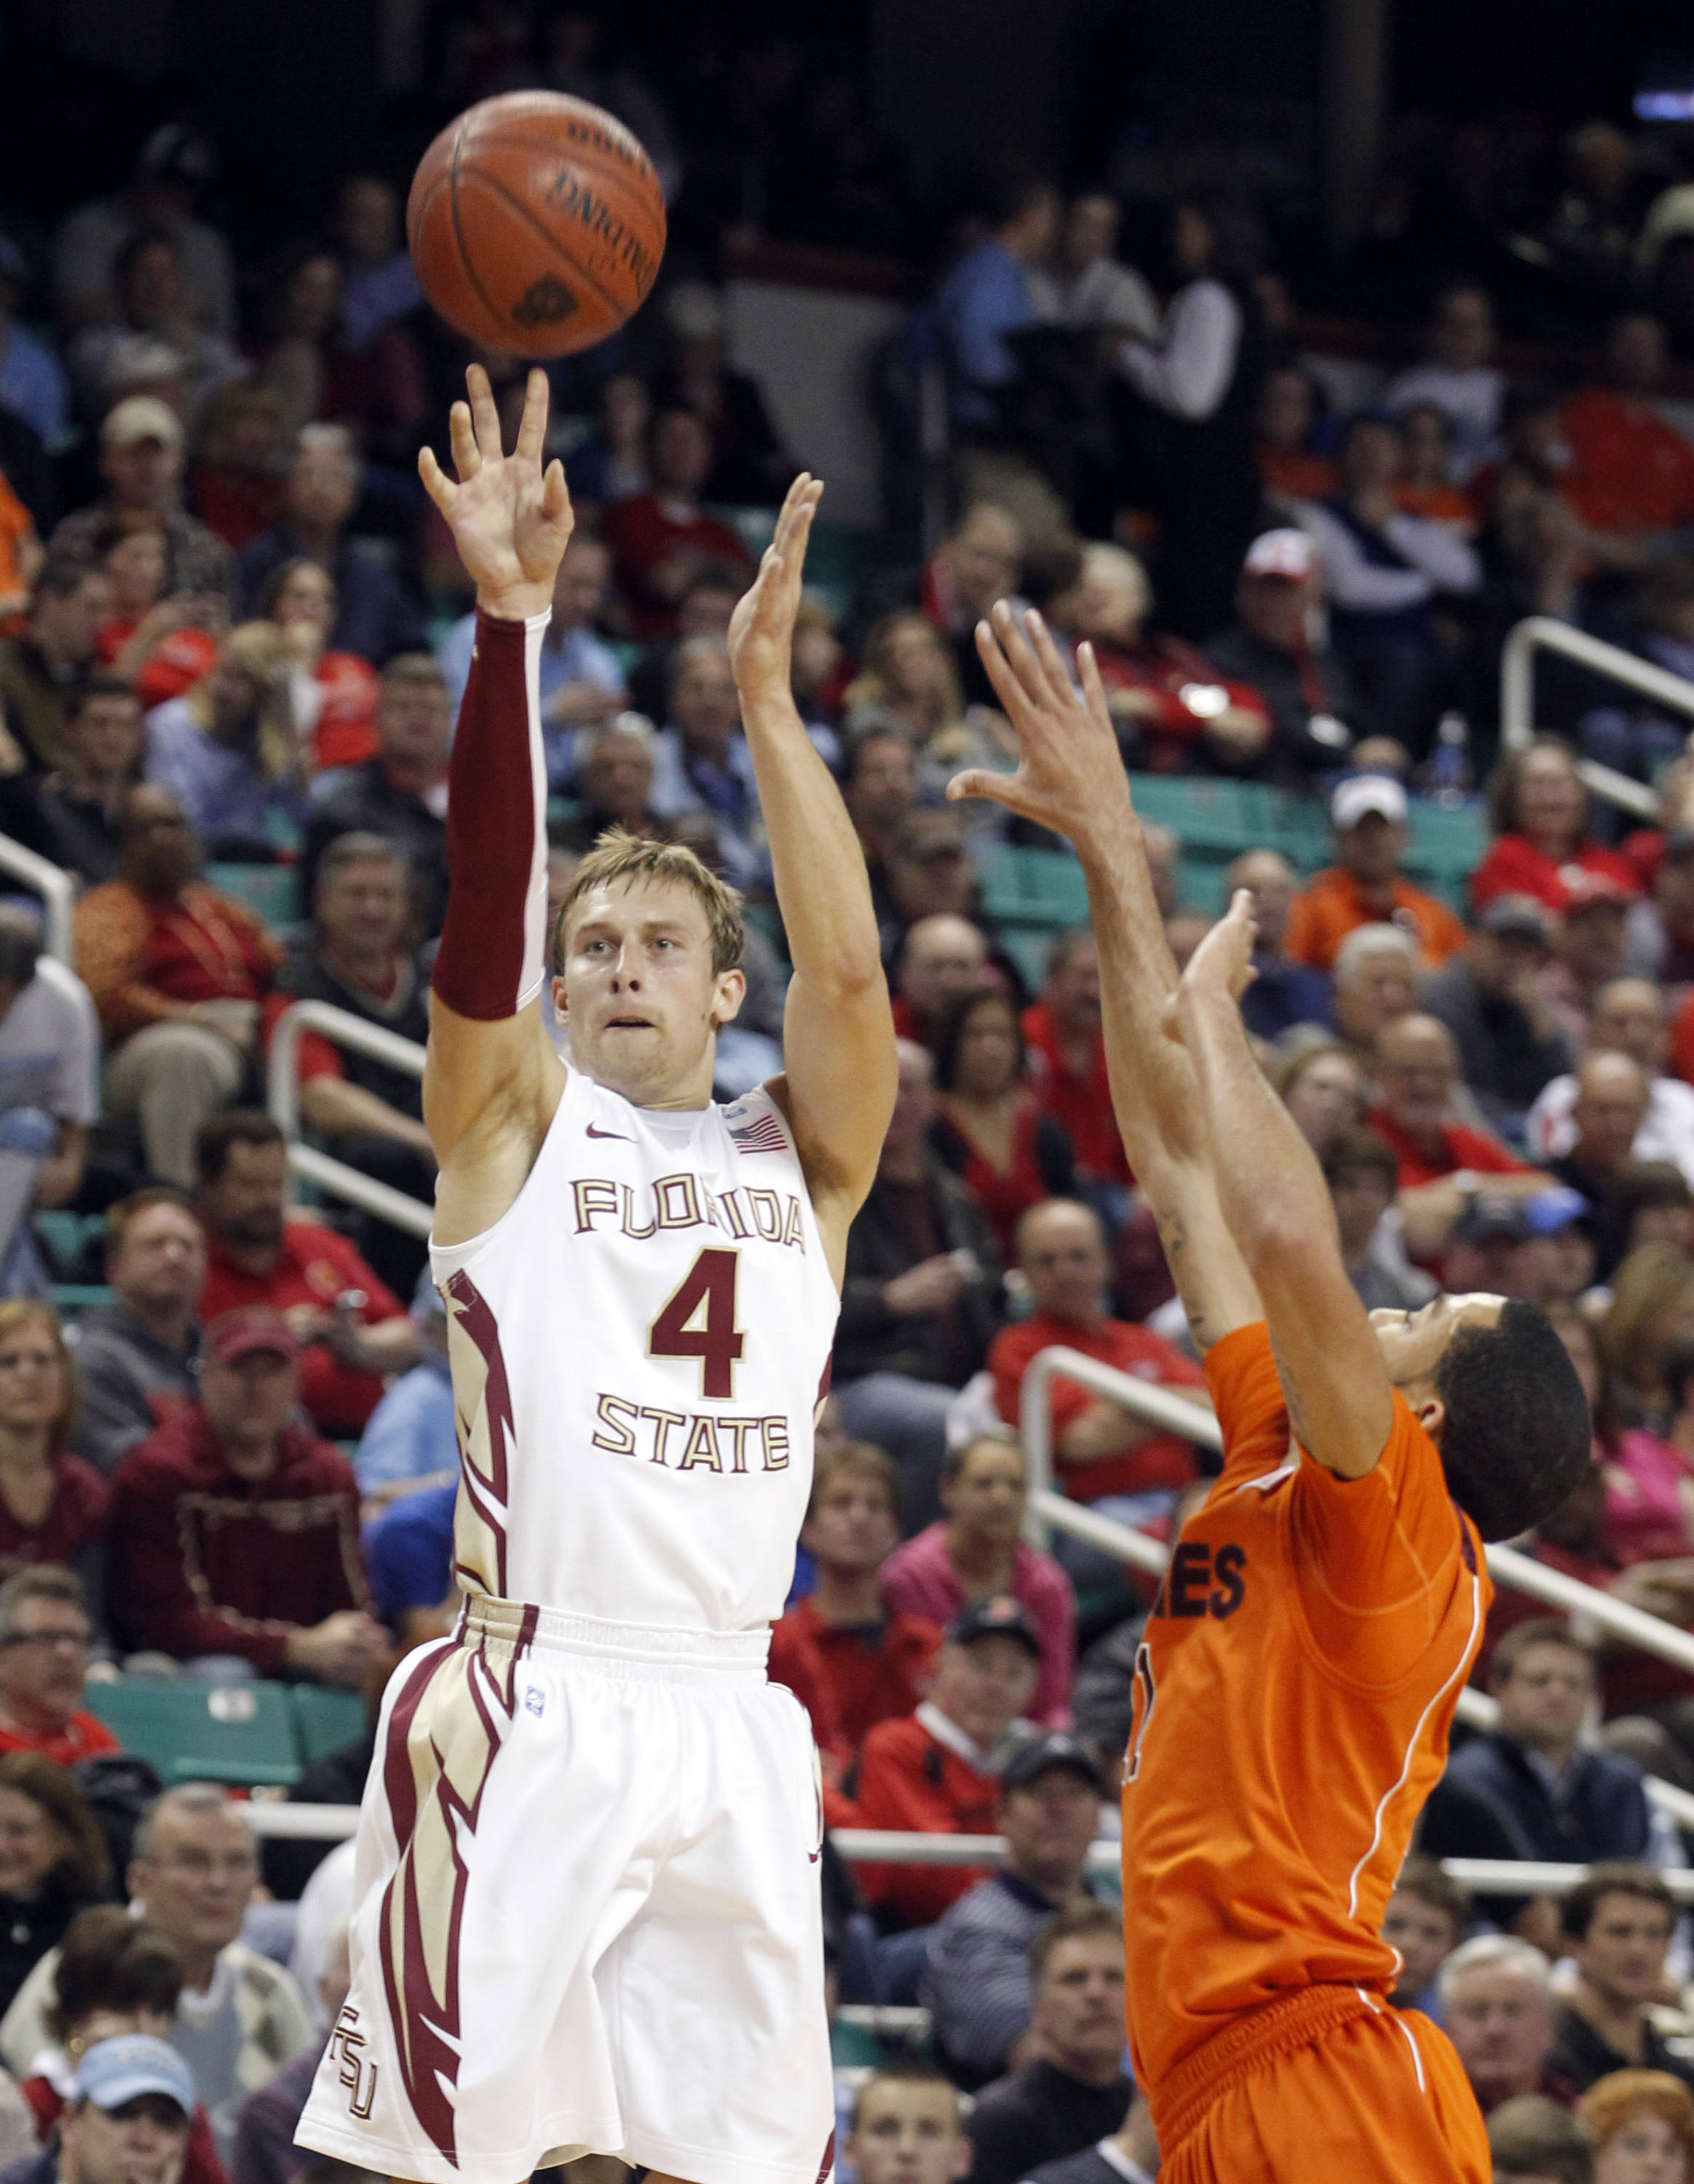 Florida State's Deividas Dulkys shoots over Virginia Tech's Erick Green. (AP Photo/Bob Leverone)